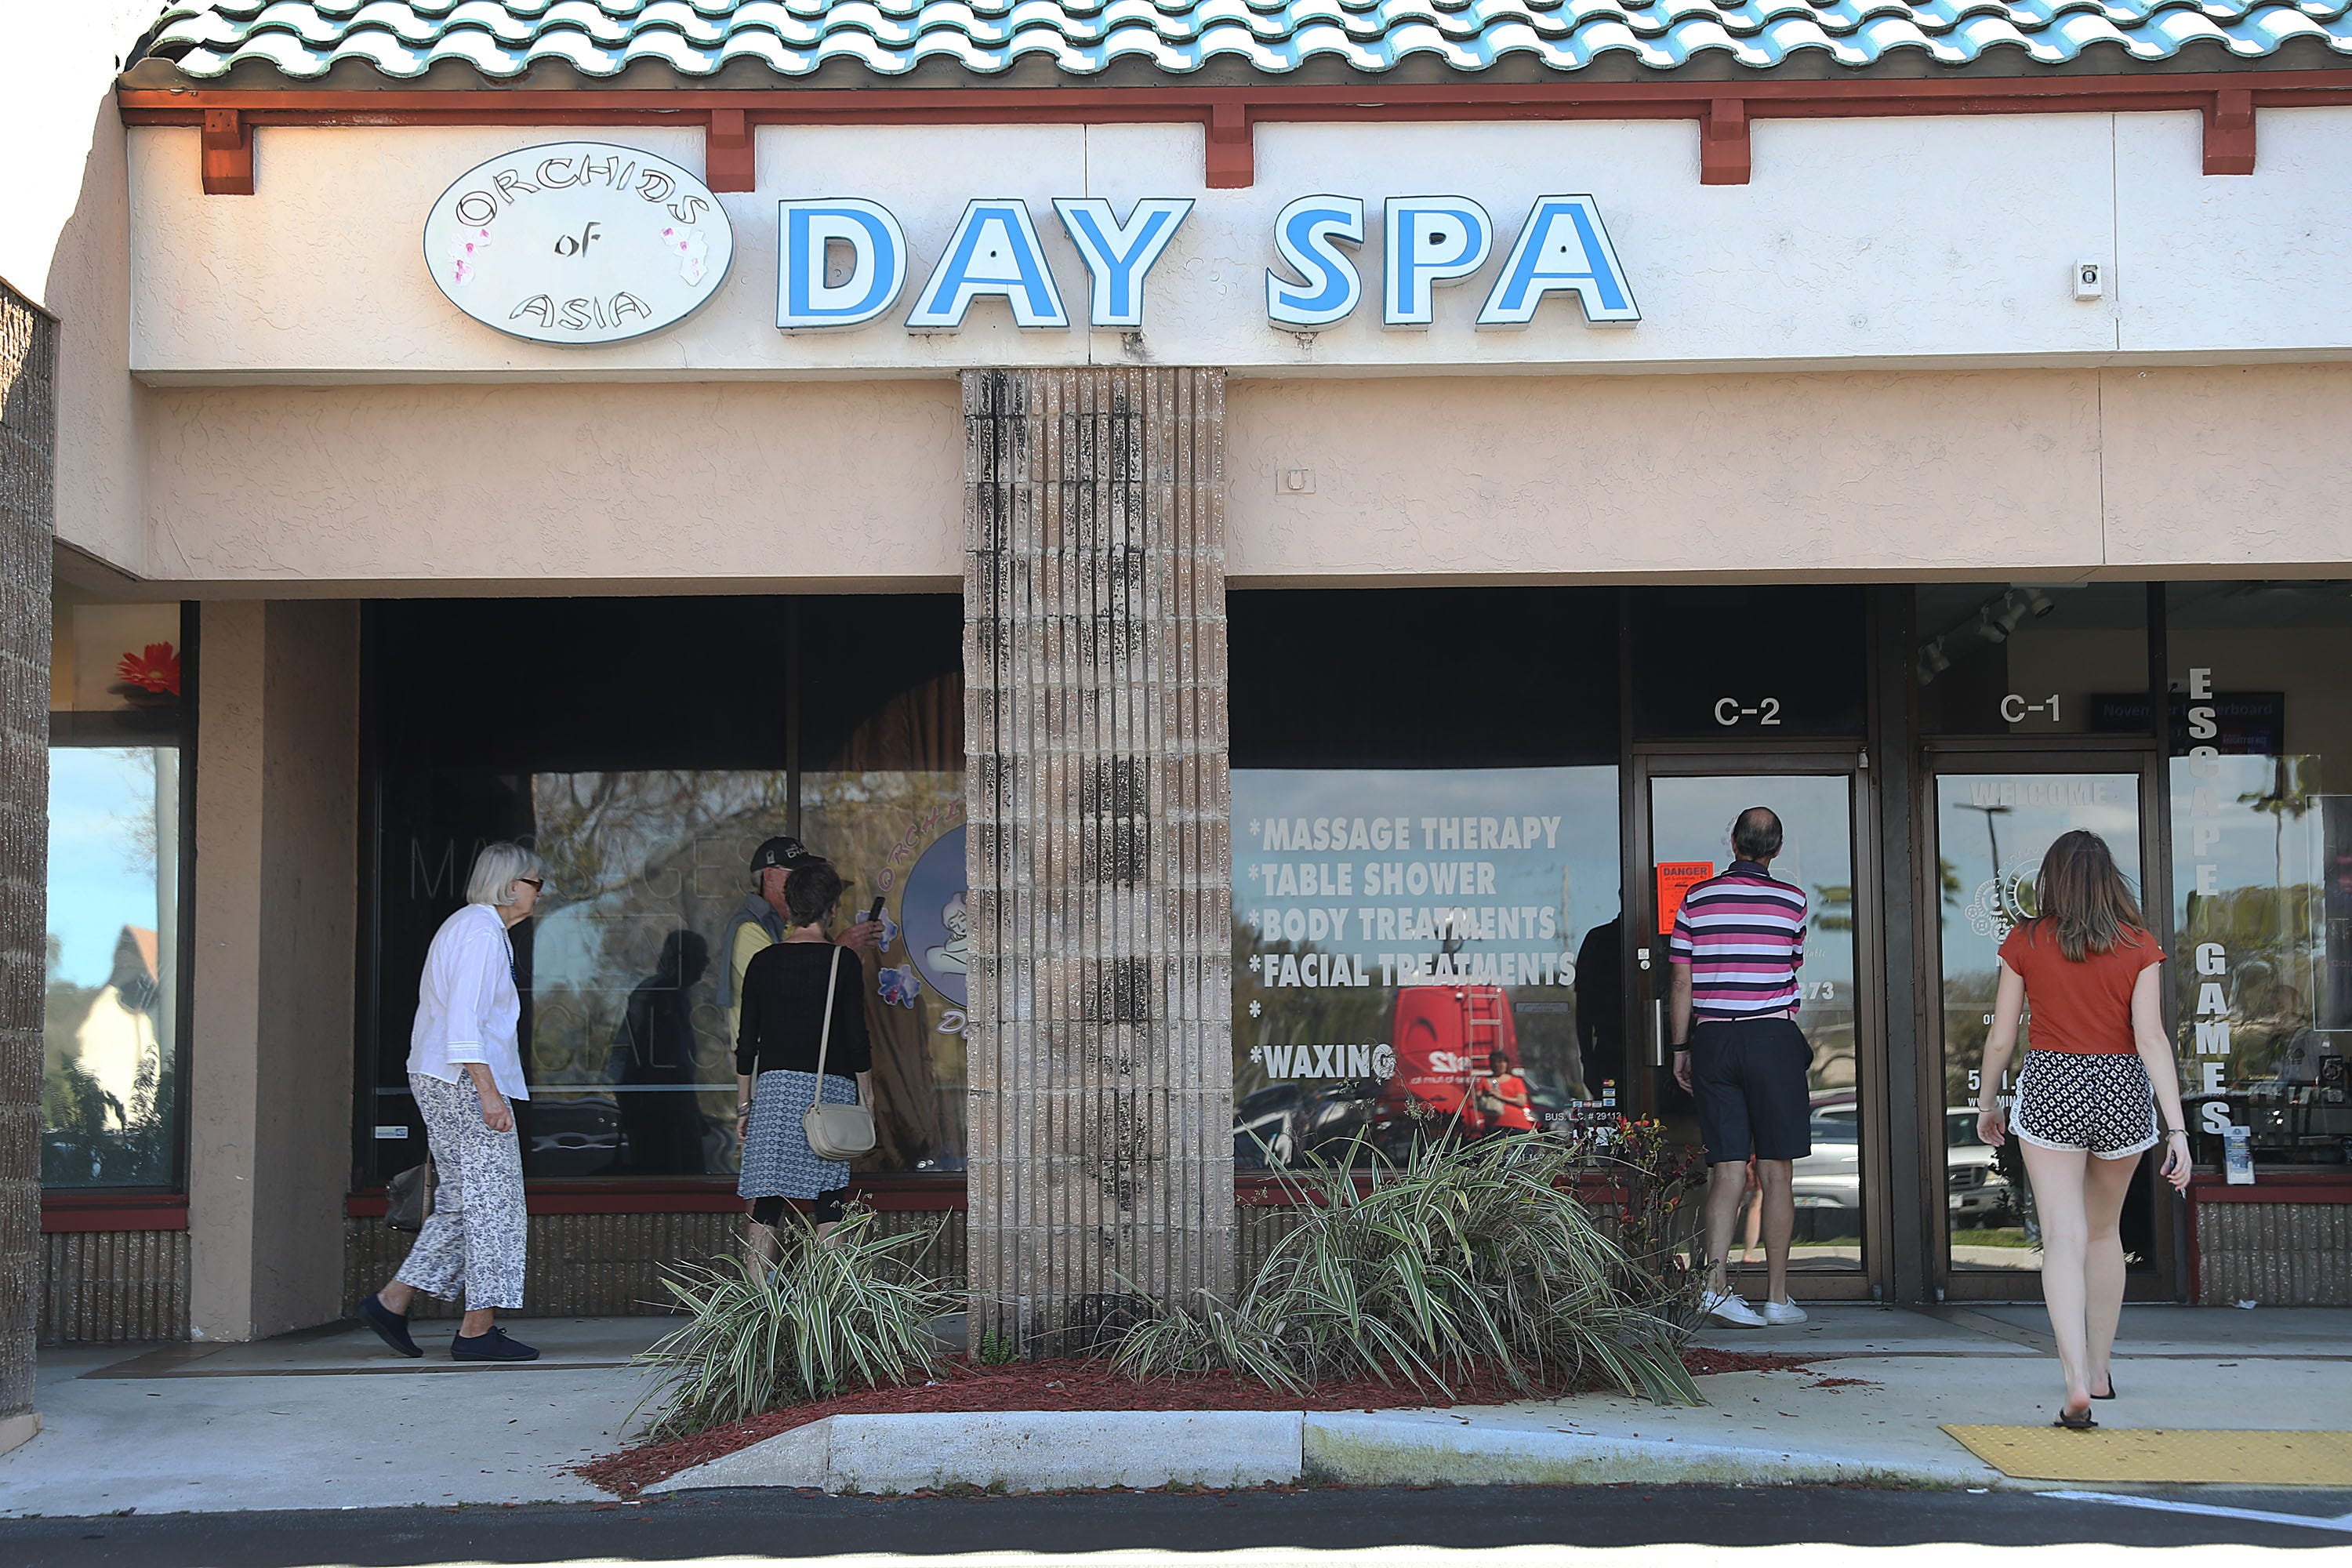 People mill around in front of the Orchids of Asia Day Spa after New England Patriots owner Robert Kraft was charged Feb. 22, 2019, with allegedly soliciting sex in Jupiter, Florida. Kraft was caught up in a law enforcement operation in South Florida that netted hundreds of johns over the past two weeks.